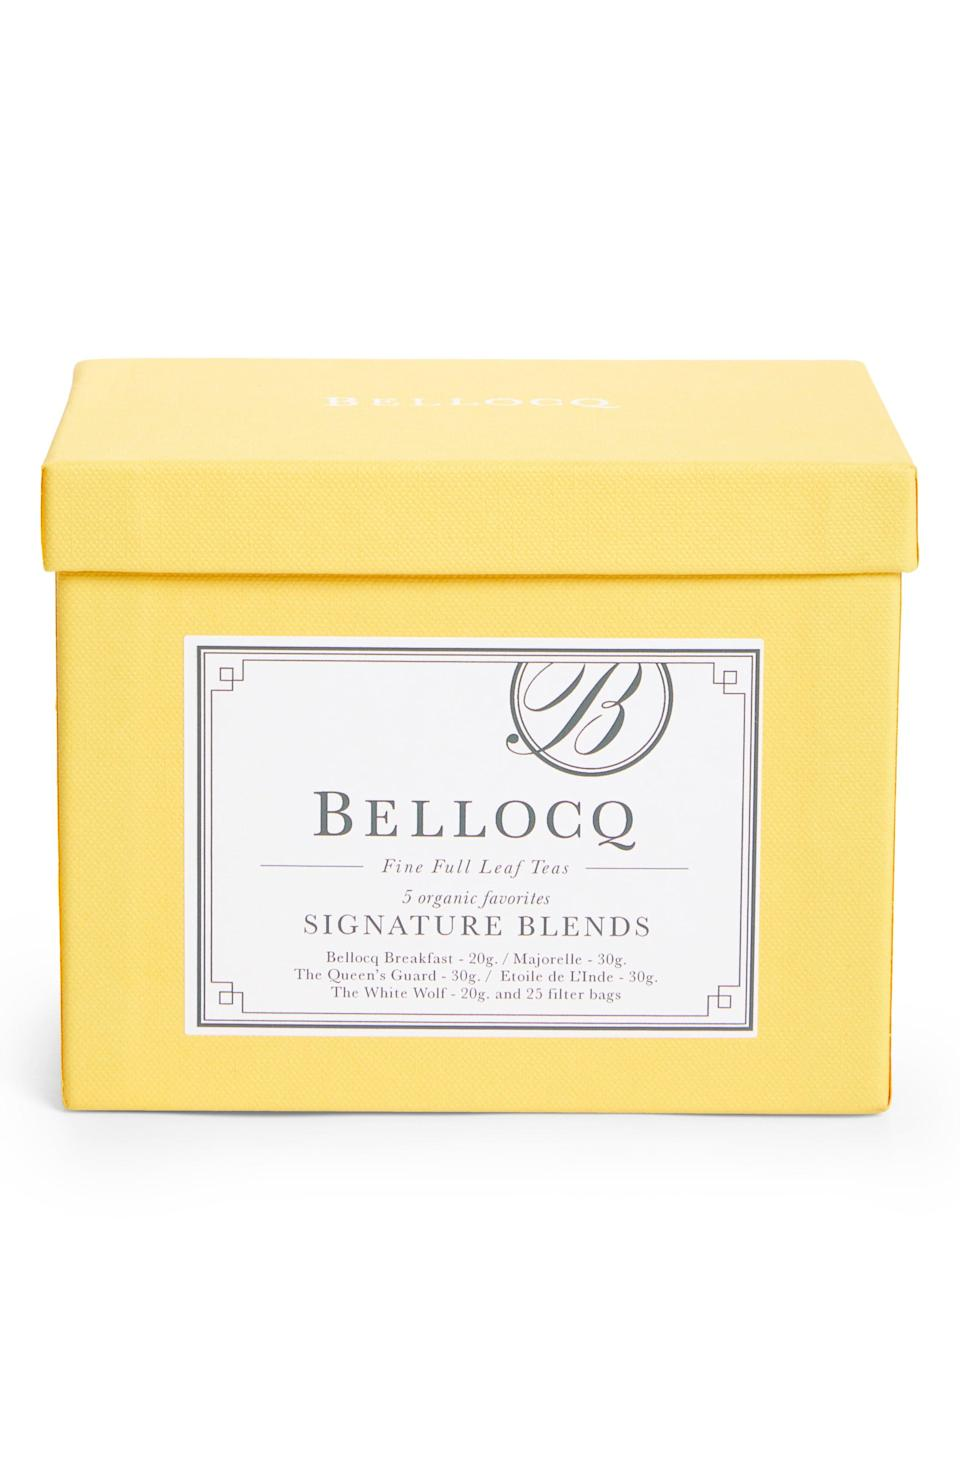 """<p><strong>BELLOCQ</strong></p><p>nordstrom.com</p><p><strong>$36.00</strong></p><p><a href=""""https://go.redirectingat.com?id=74968X1596630&url=https%3A%2F%2Fwww.nordstrom.com%2Fs%2Fbellocq-signature-blends-5-blend-organic-tea-collection%2F5728701&sref=https%3A%2F%2Fwww.redbookmag.com%2Ffood-recipes%2Fg35419747%2Fbest-tea-brands%2F"""" rel=""""nofollow noopener"""" target=""""_blank"""" data-ylk=""""slk:Shop Now"""" class=""""link rapid-noclick-resp"""">Shop Now</a></p><p>Based out of Greenpoint, Brooklyn, this exclusive tea emporium specialized in single origin, whole leaf pure teas and unique, elegant handmade blends that are perfect for true tea aficionados. </p>"""